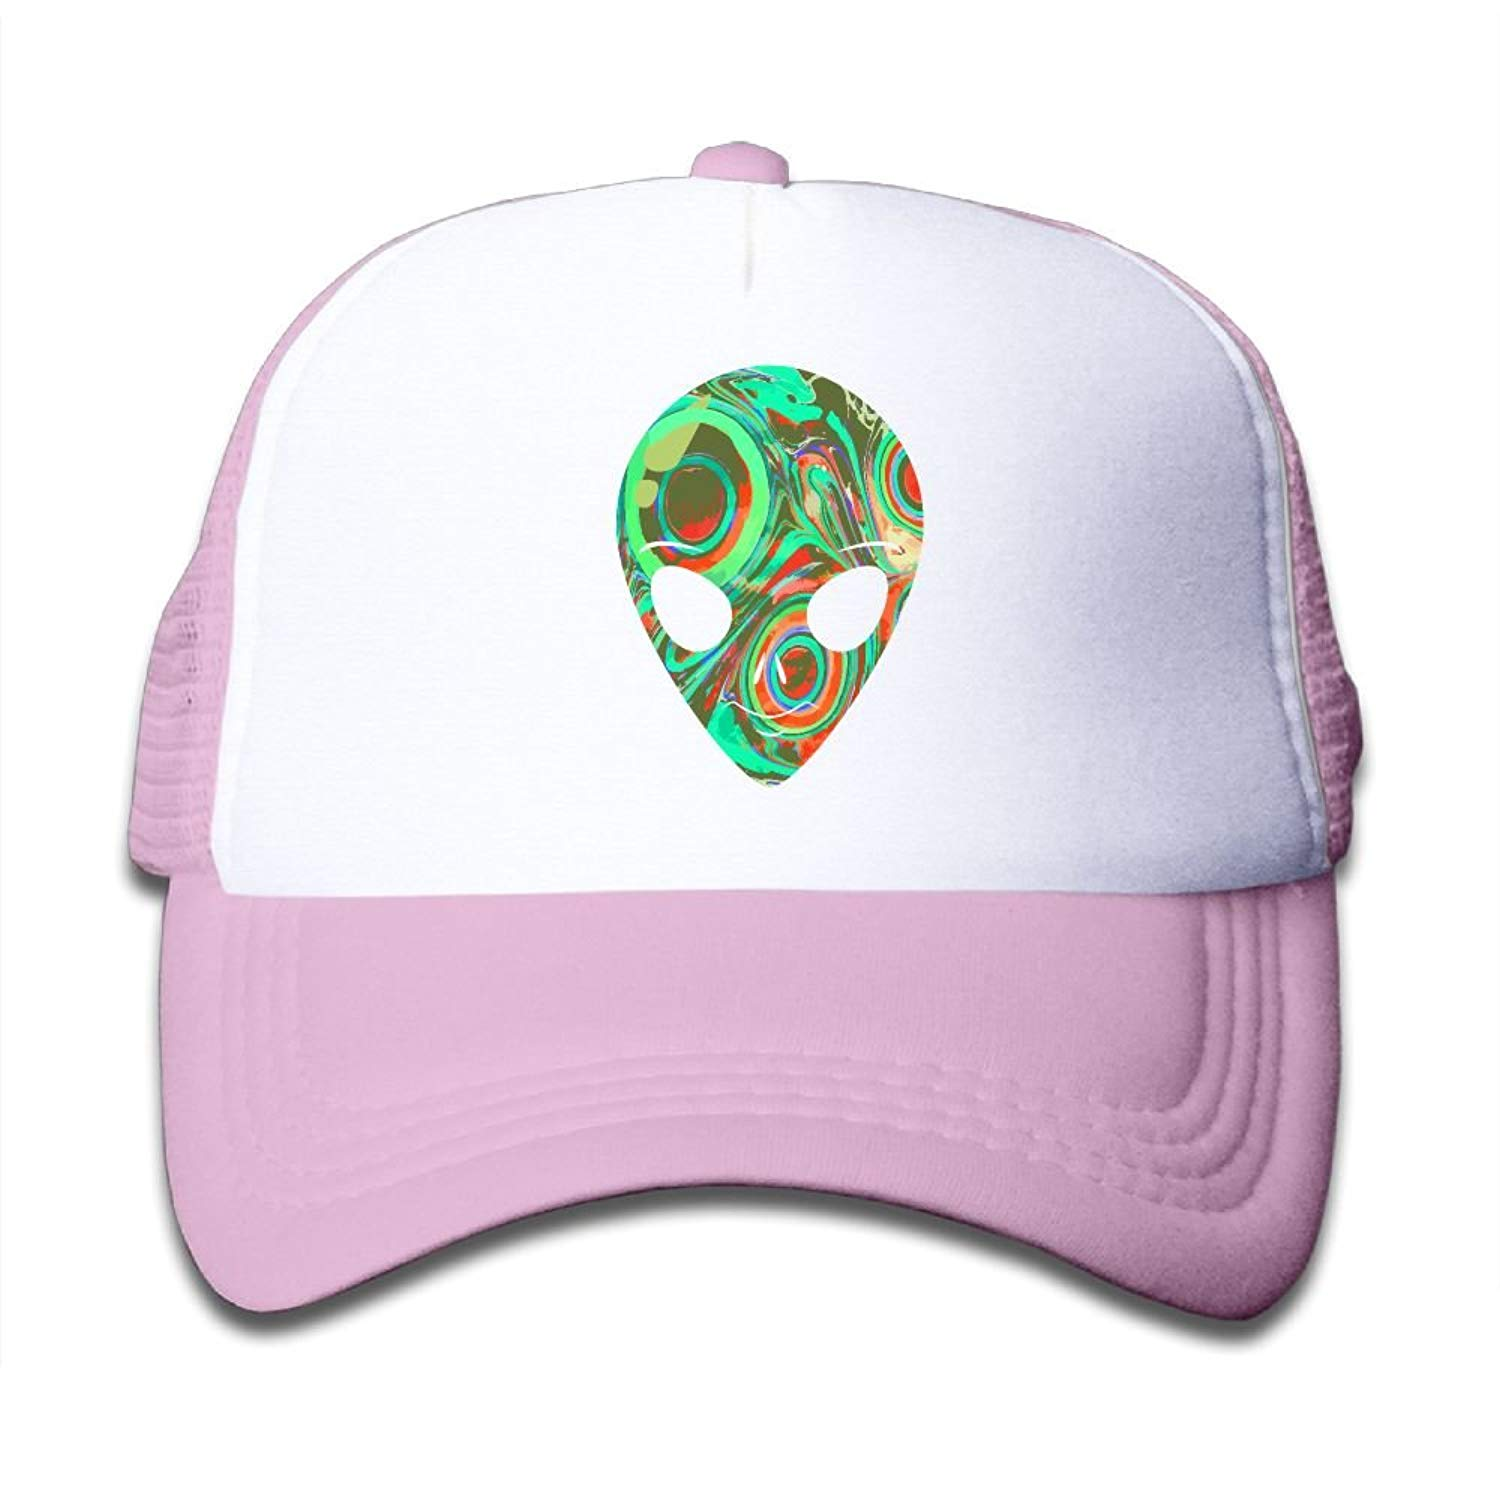 Sol Baby Unicorn Vibes Infant//Toddler Hot Pink Trucker Hat